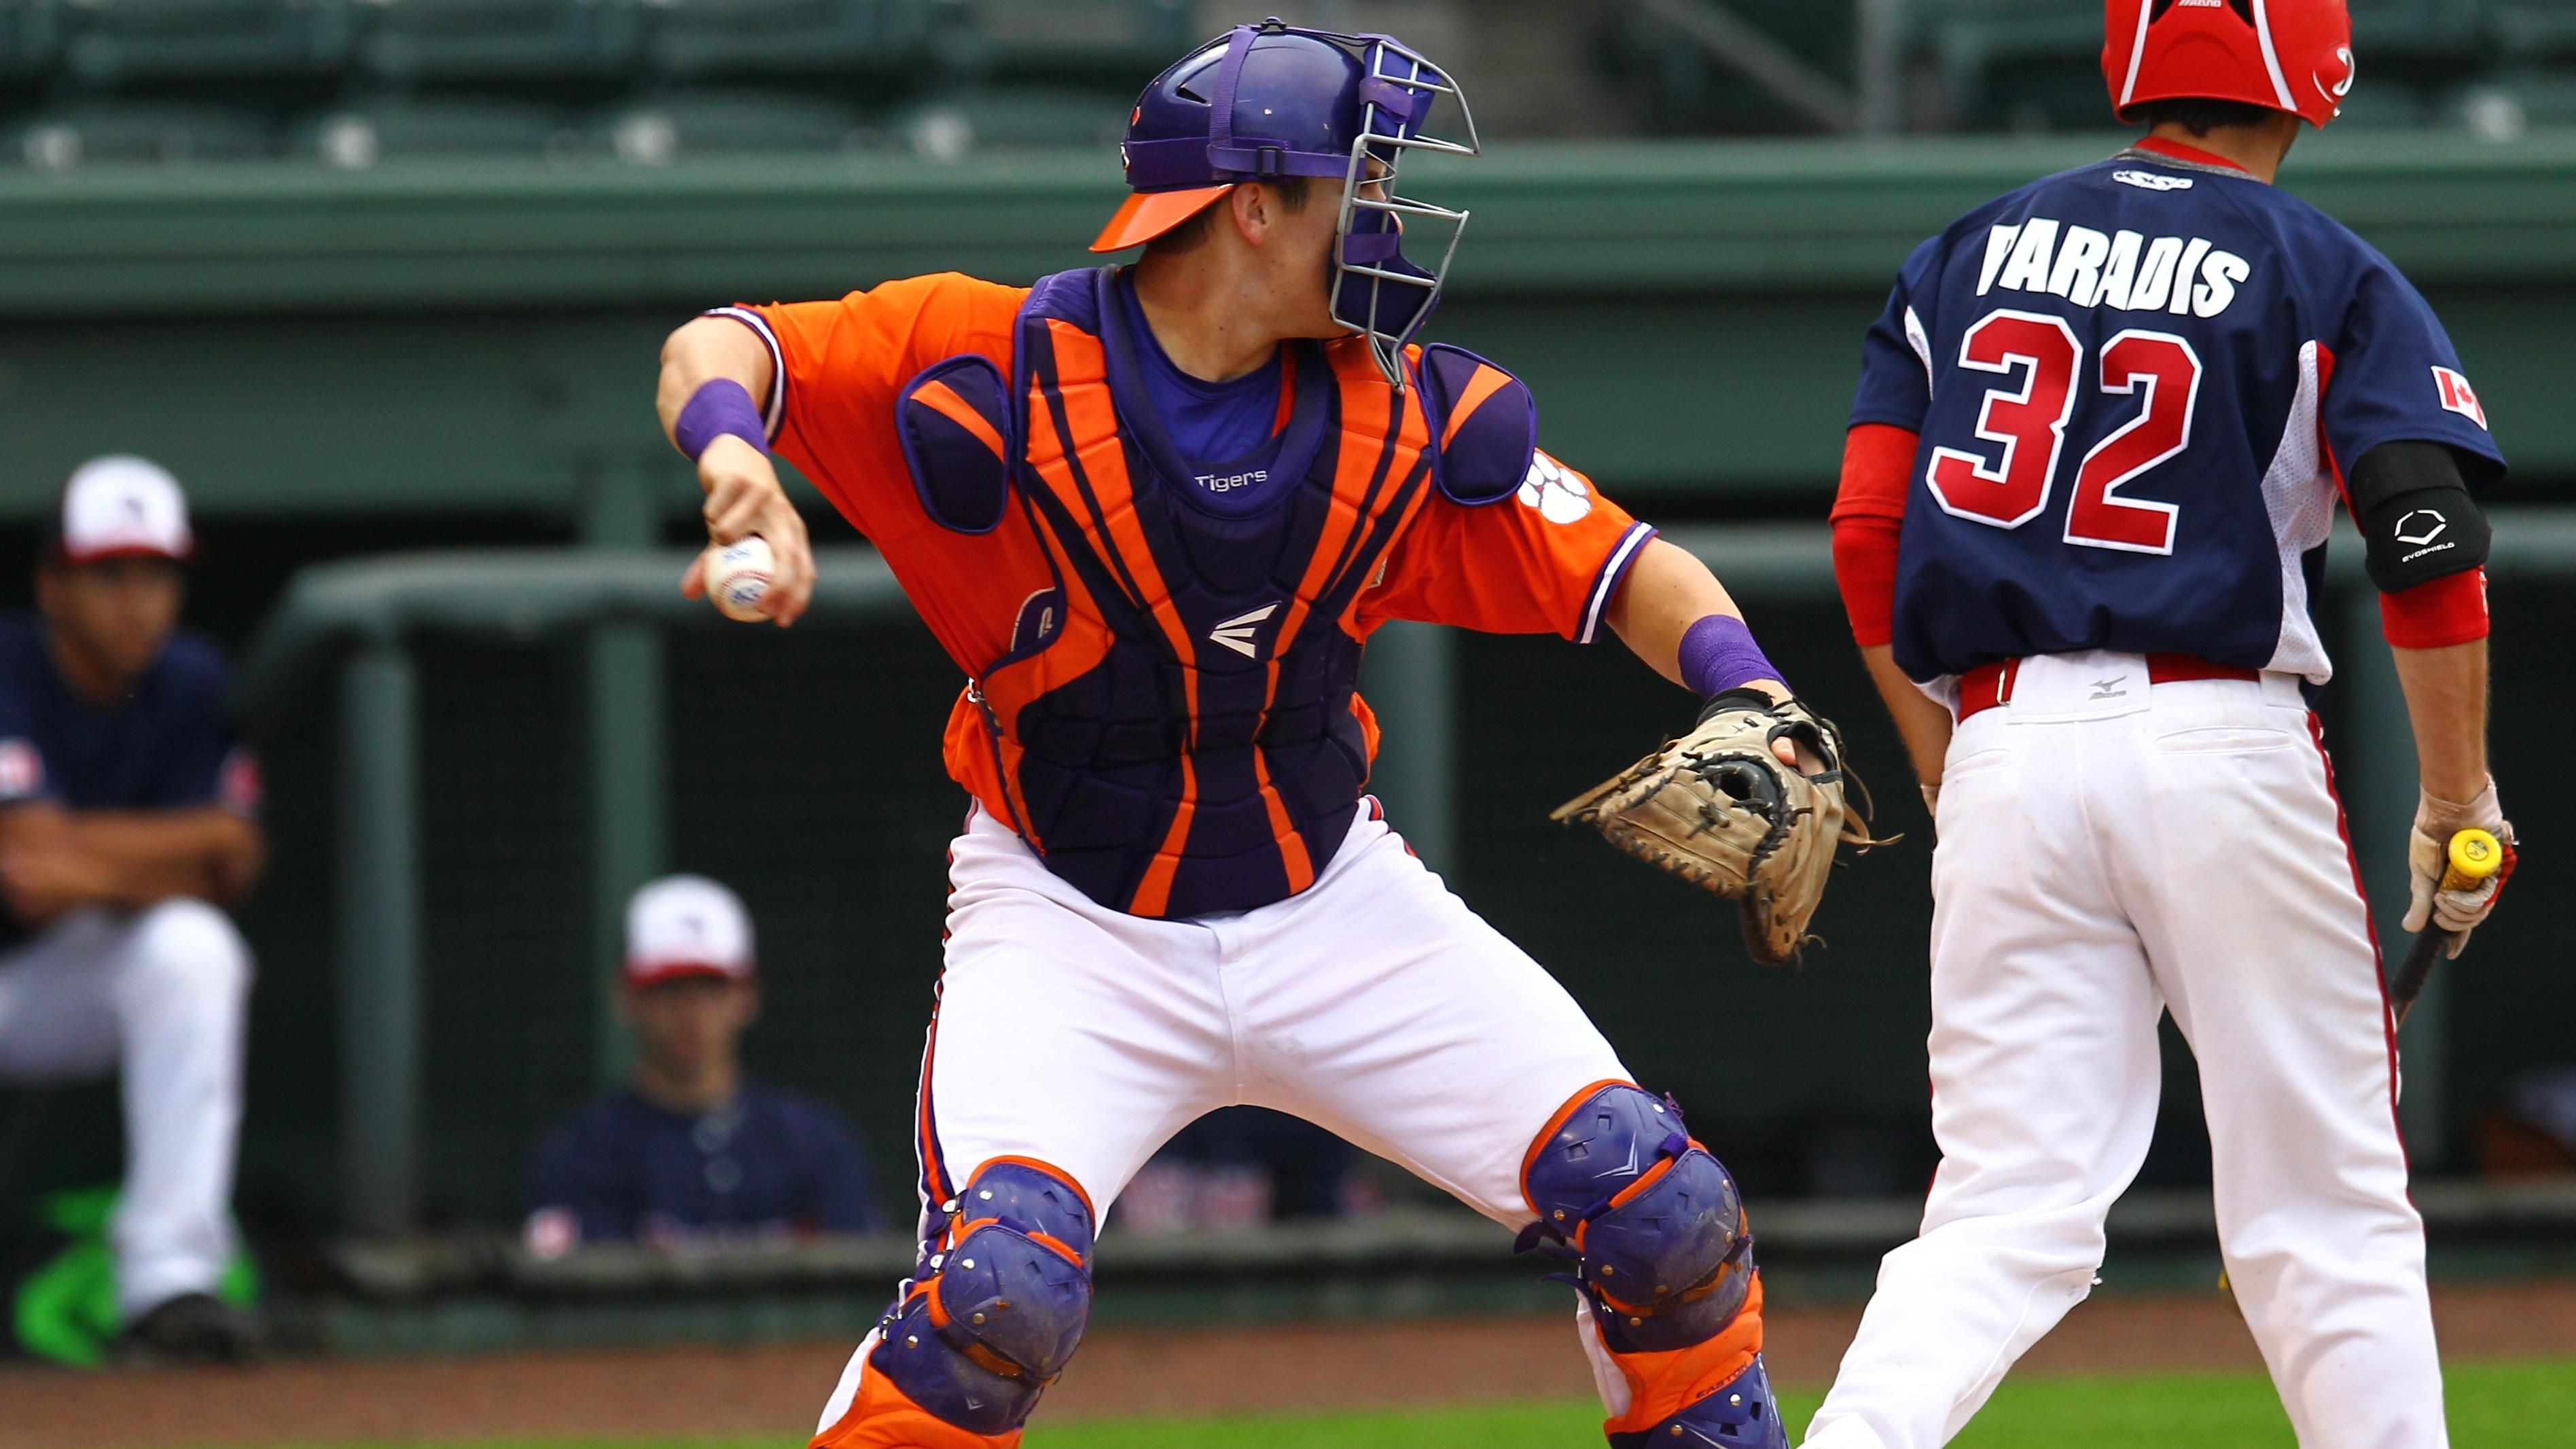 Clemson Baseball Recruiting Class Ranked #16 By Baseball America